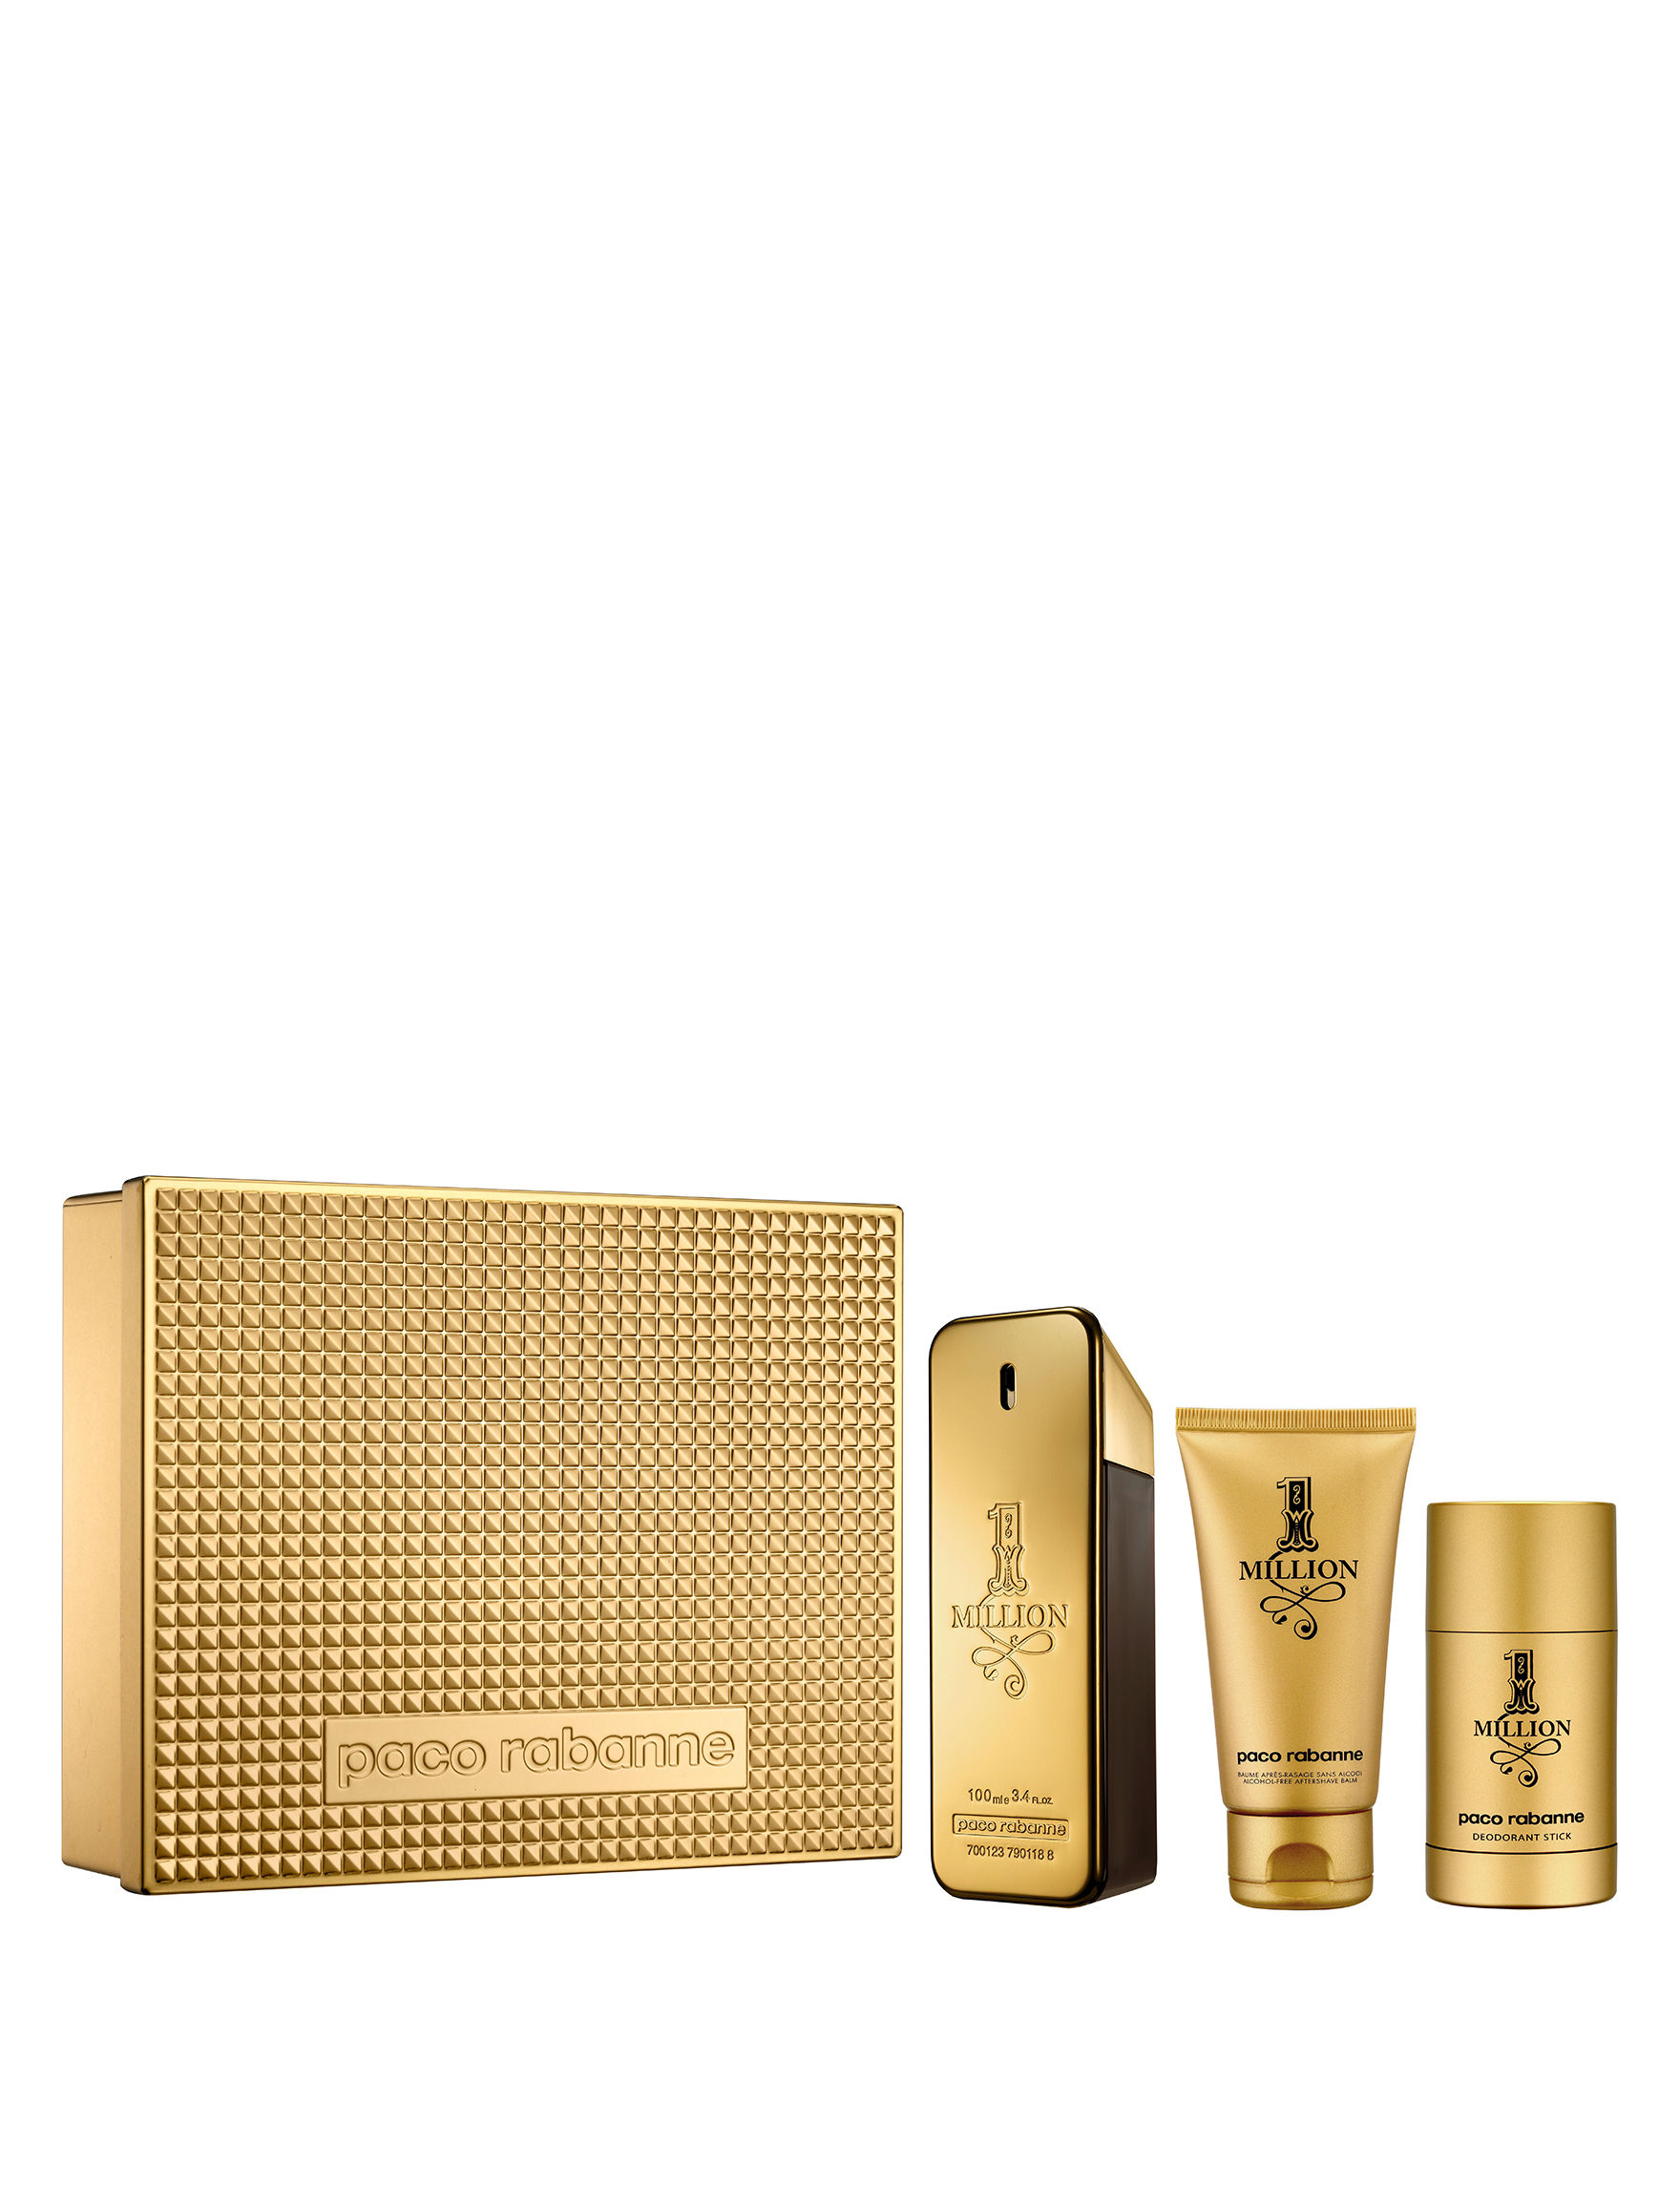 Paco Rabanne  Fragrance Gift Sets